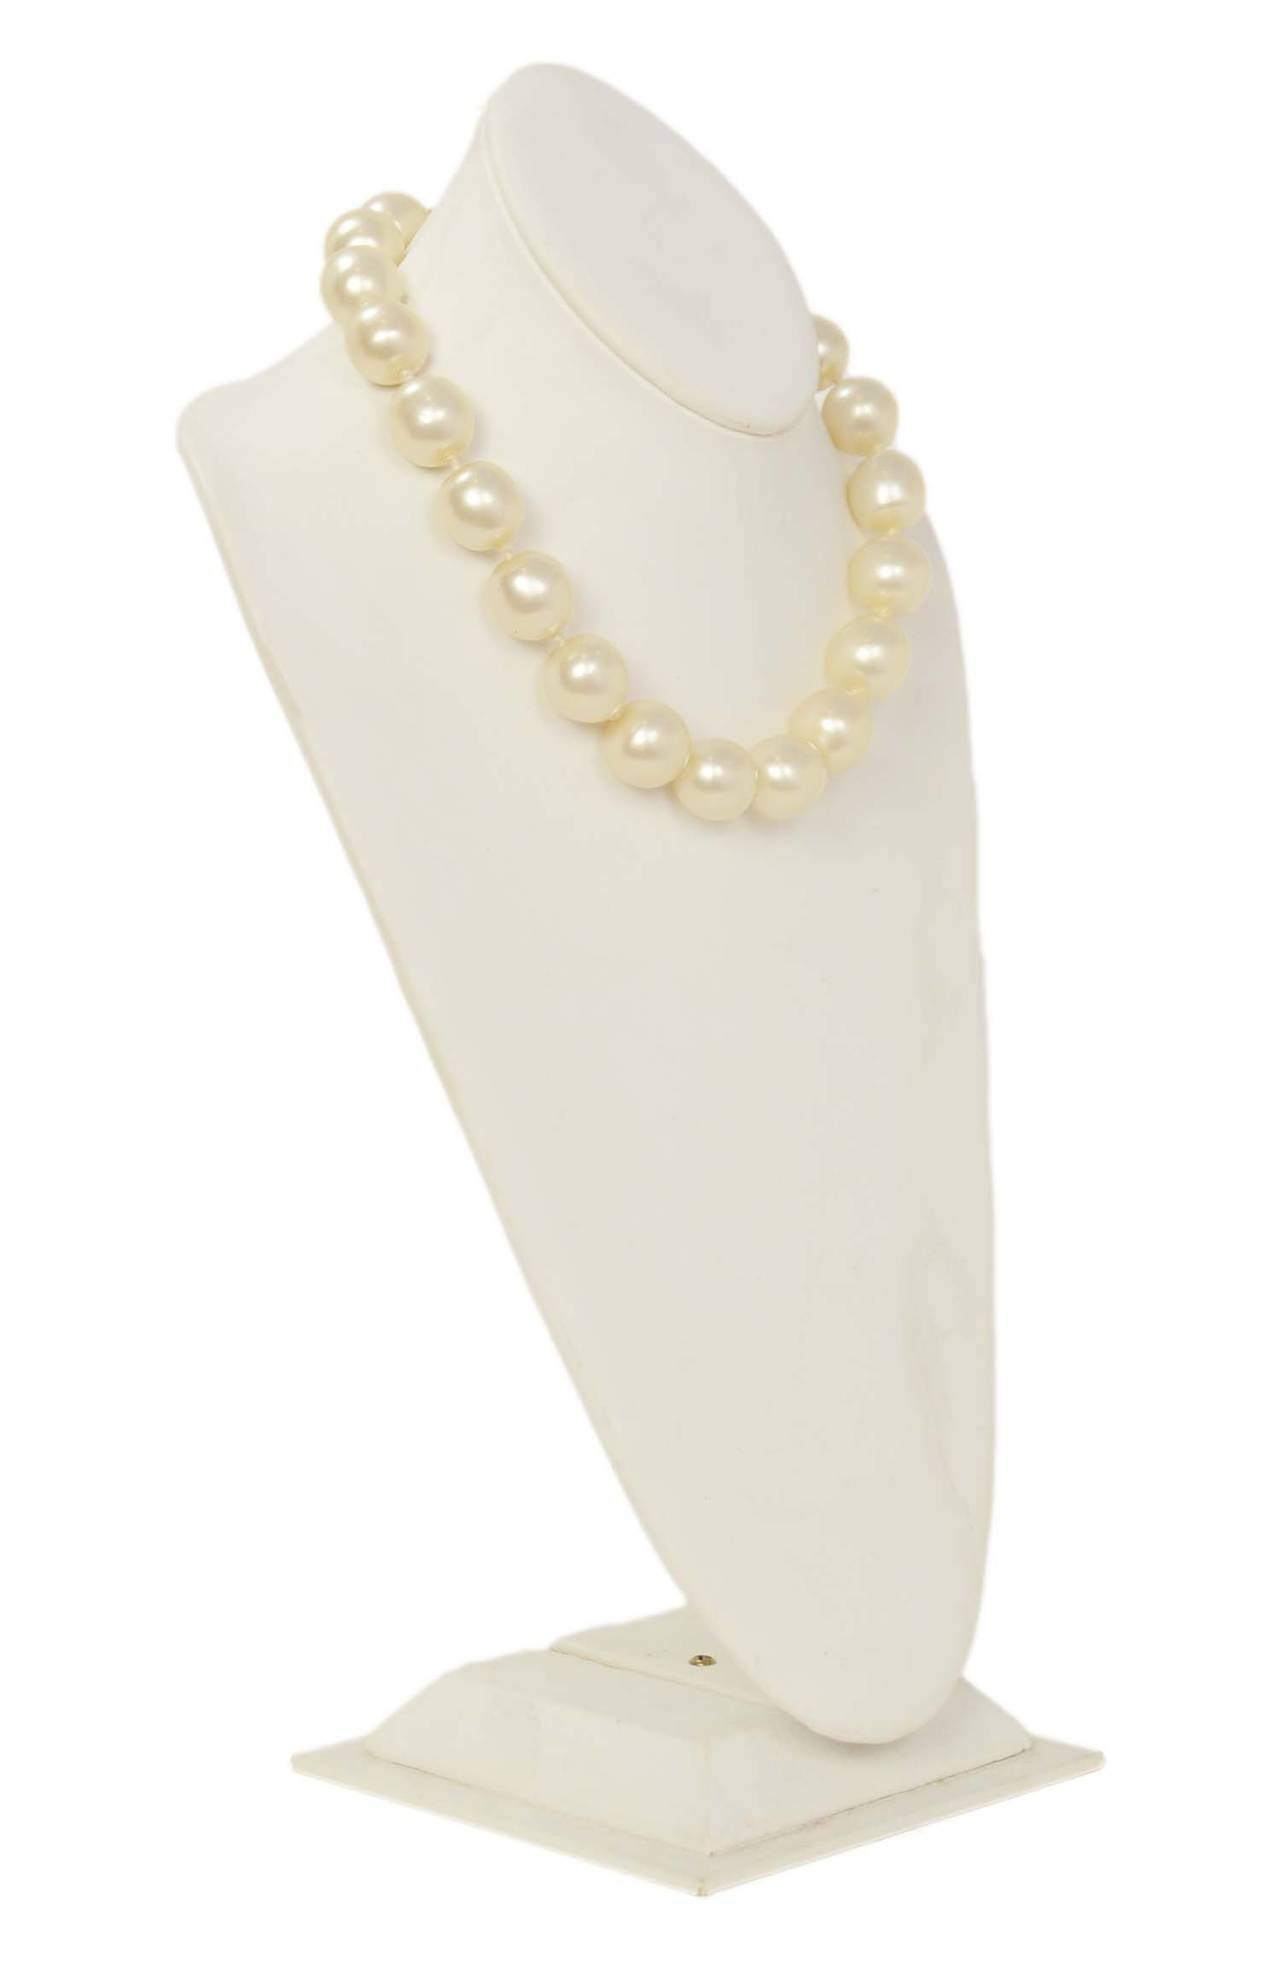 CHANEL Vintage 1950's-1960's Large Pearl Choker w/Quilted Toggle 3